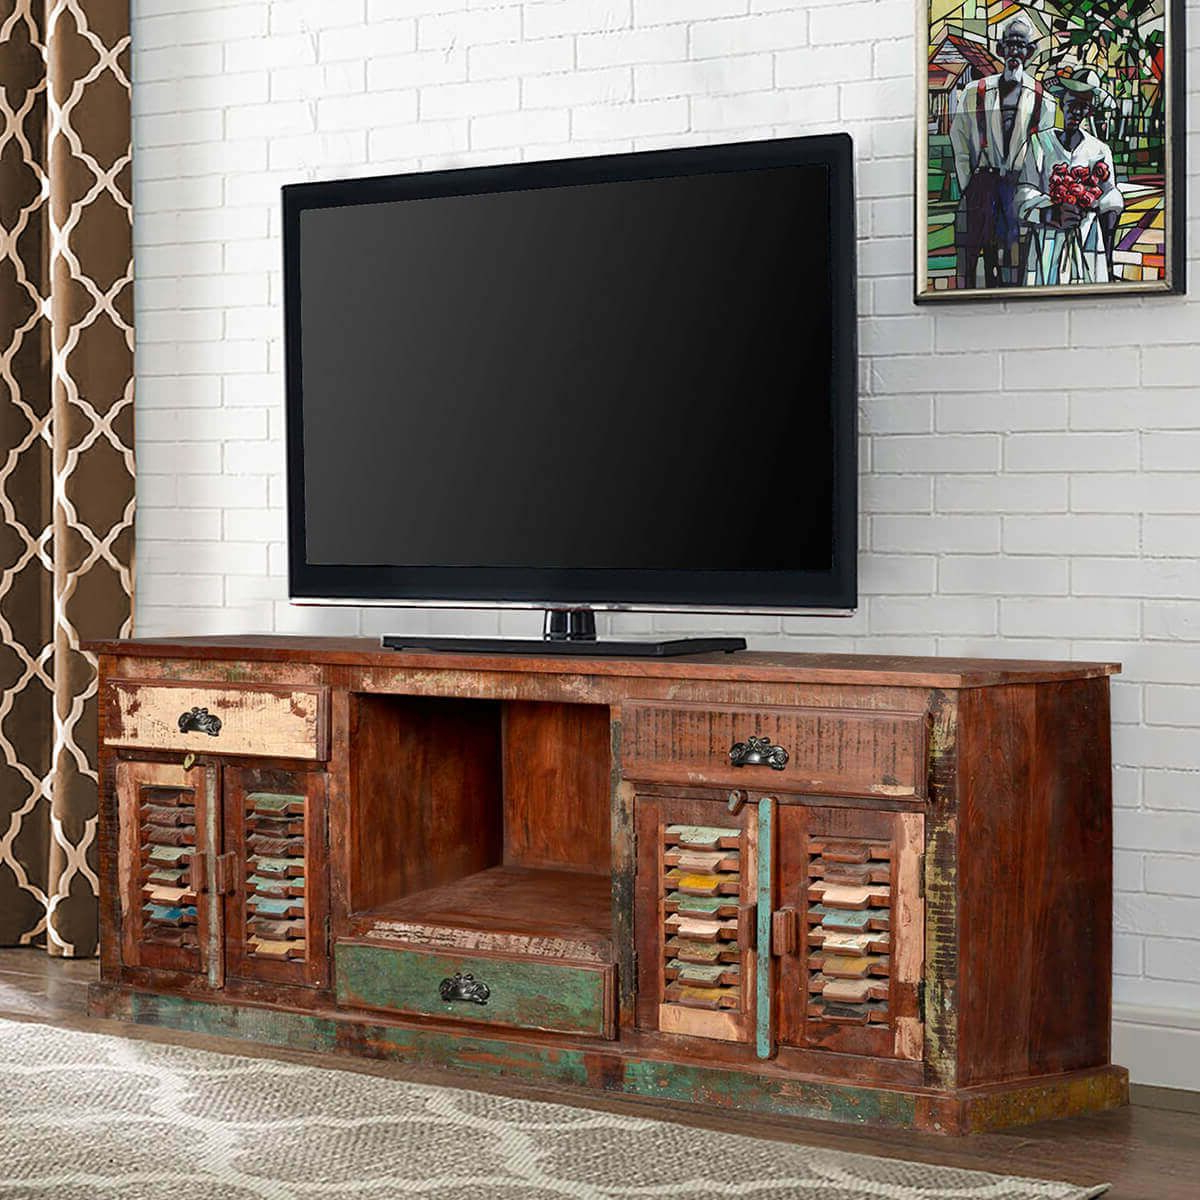 Rustic Reclaimed Wood Large Tv Stand Media Console In Preferred Rustic Grey Tv Stand Media Console Stands For Living Room Bedroom (View 2 of 10)